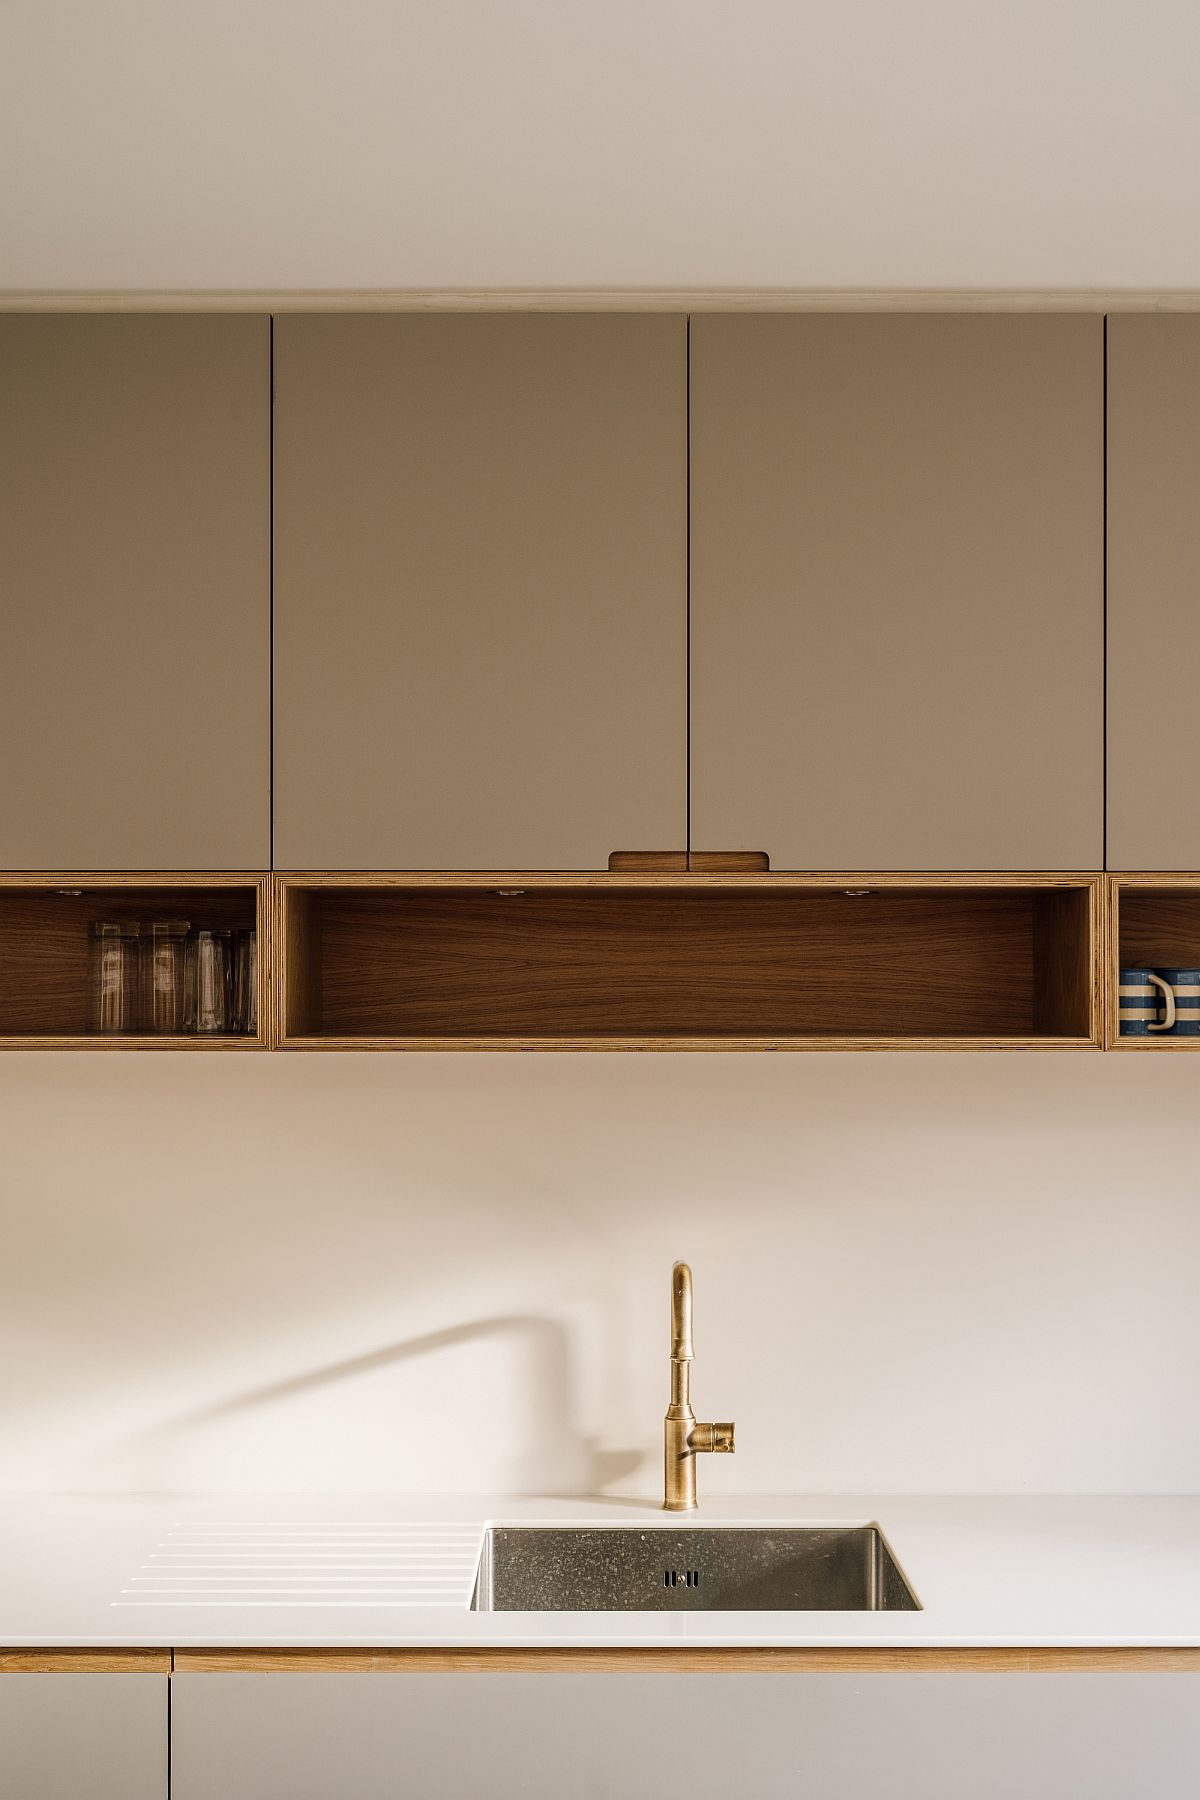 Gorgeous kitchen cabinets in laminated plywood along with oak accents